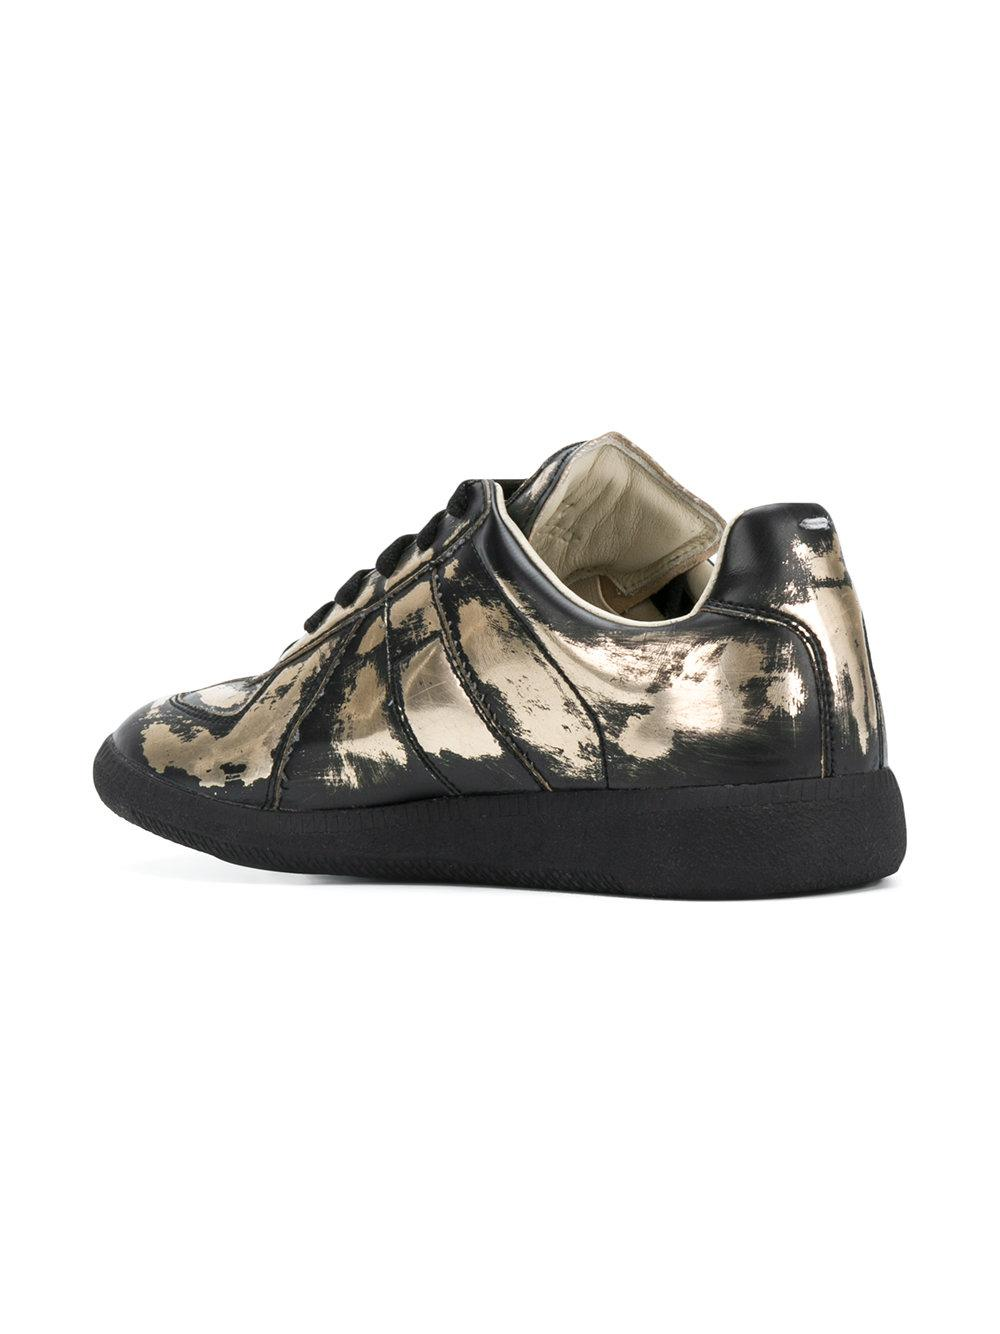 burnished Replica sneakers - Multicolour Maison Martin Margiela IUtMbc